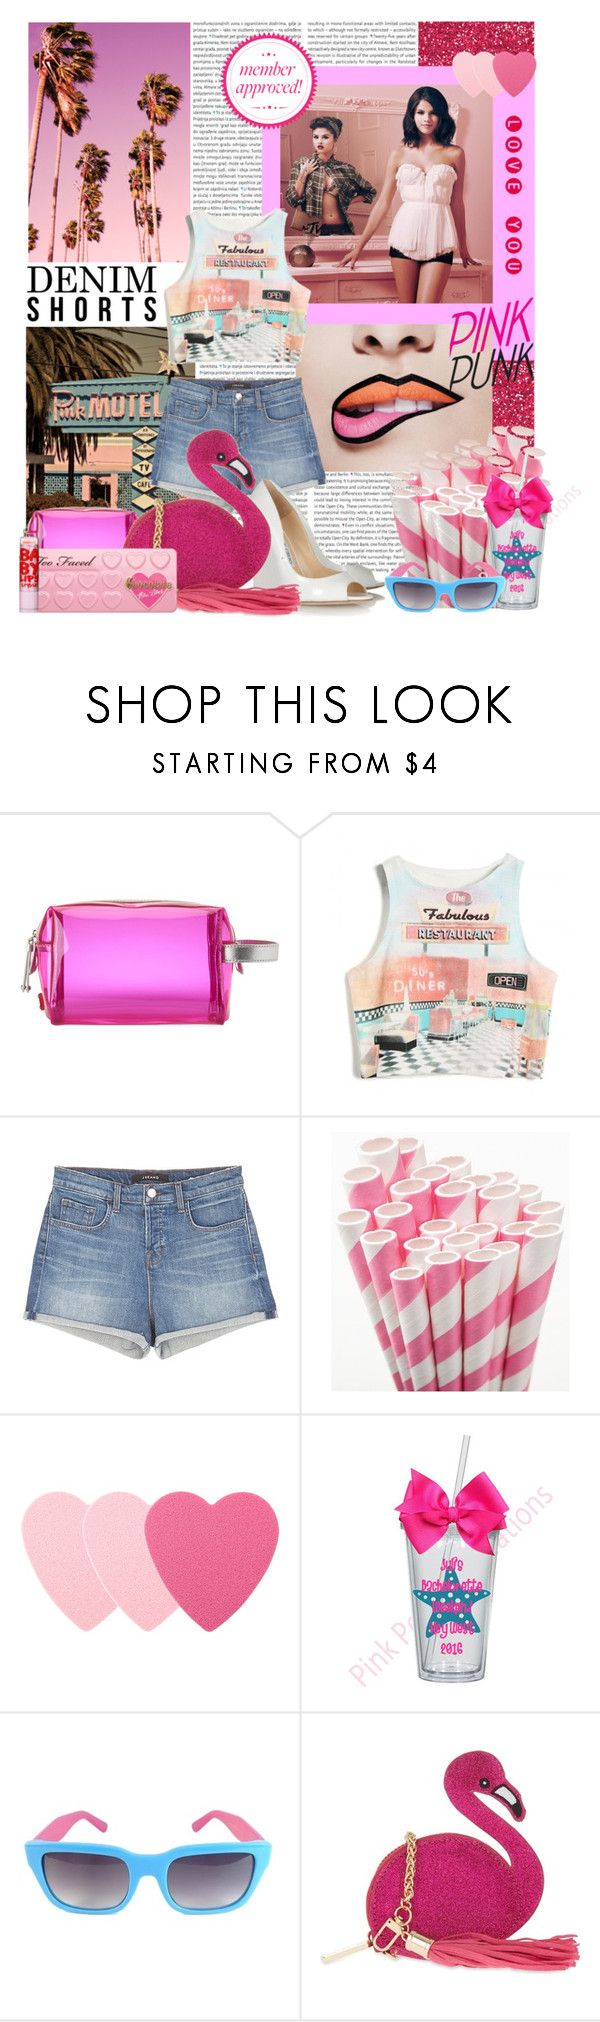 """""""The final cut: Denim shorts"""" by amethystes ❤ liked on Polyvore featuring Oris, Nine West, Retrò, J Brand, Sephora Collection, Kate Spade, Skinnydip, jeanshorts, denimshorts and cutoffs"""